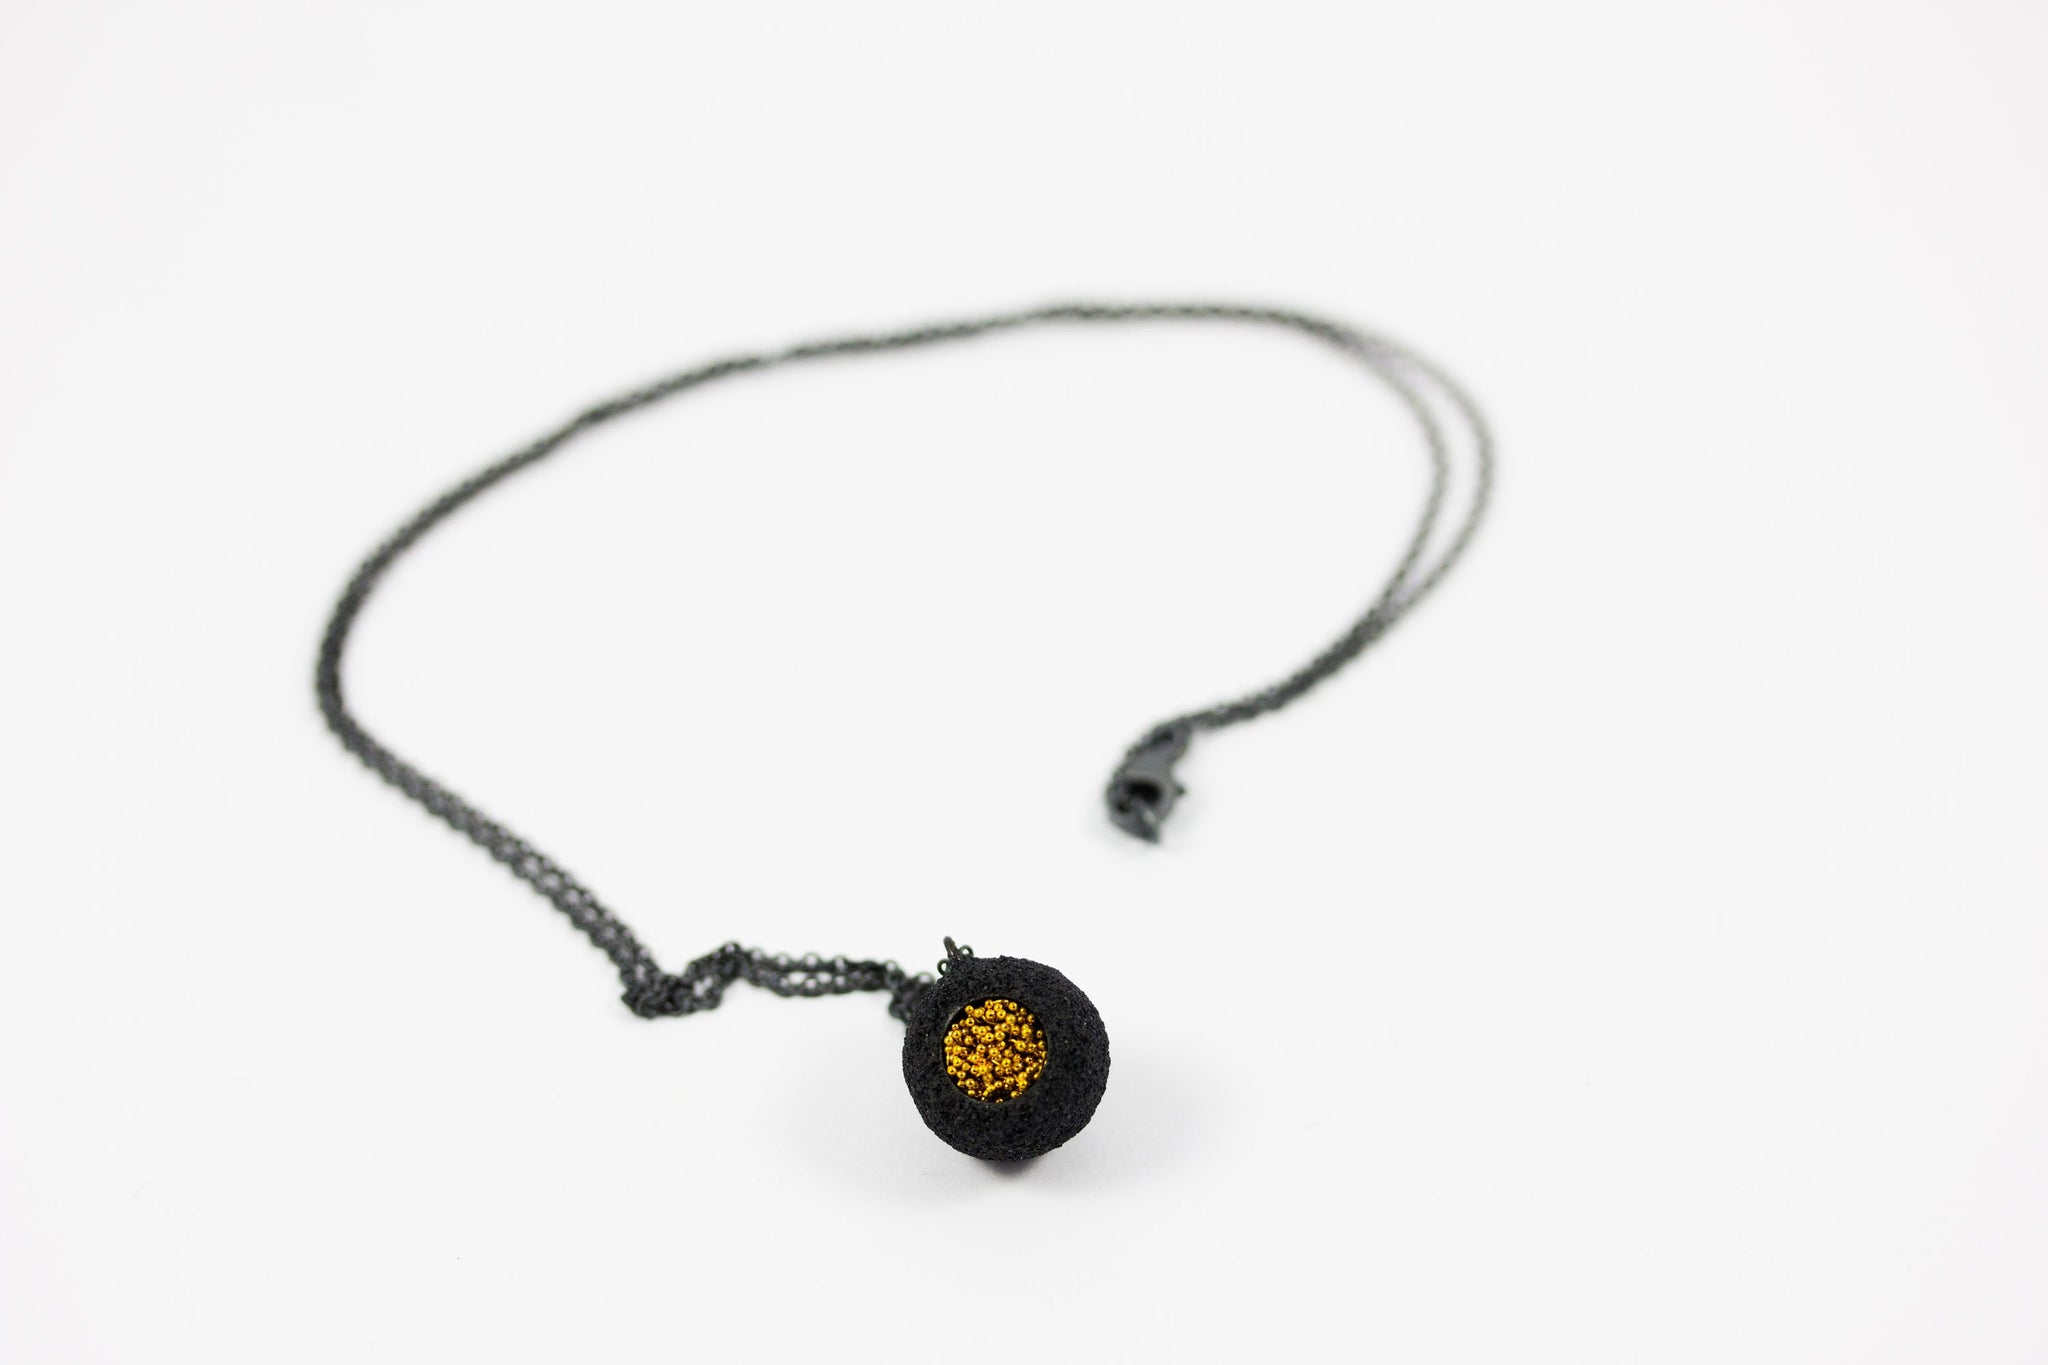 Oxidized Silver and Keum-Boo Gold Pendant - Lesetta